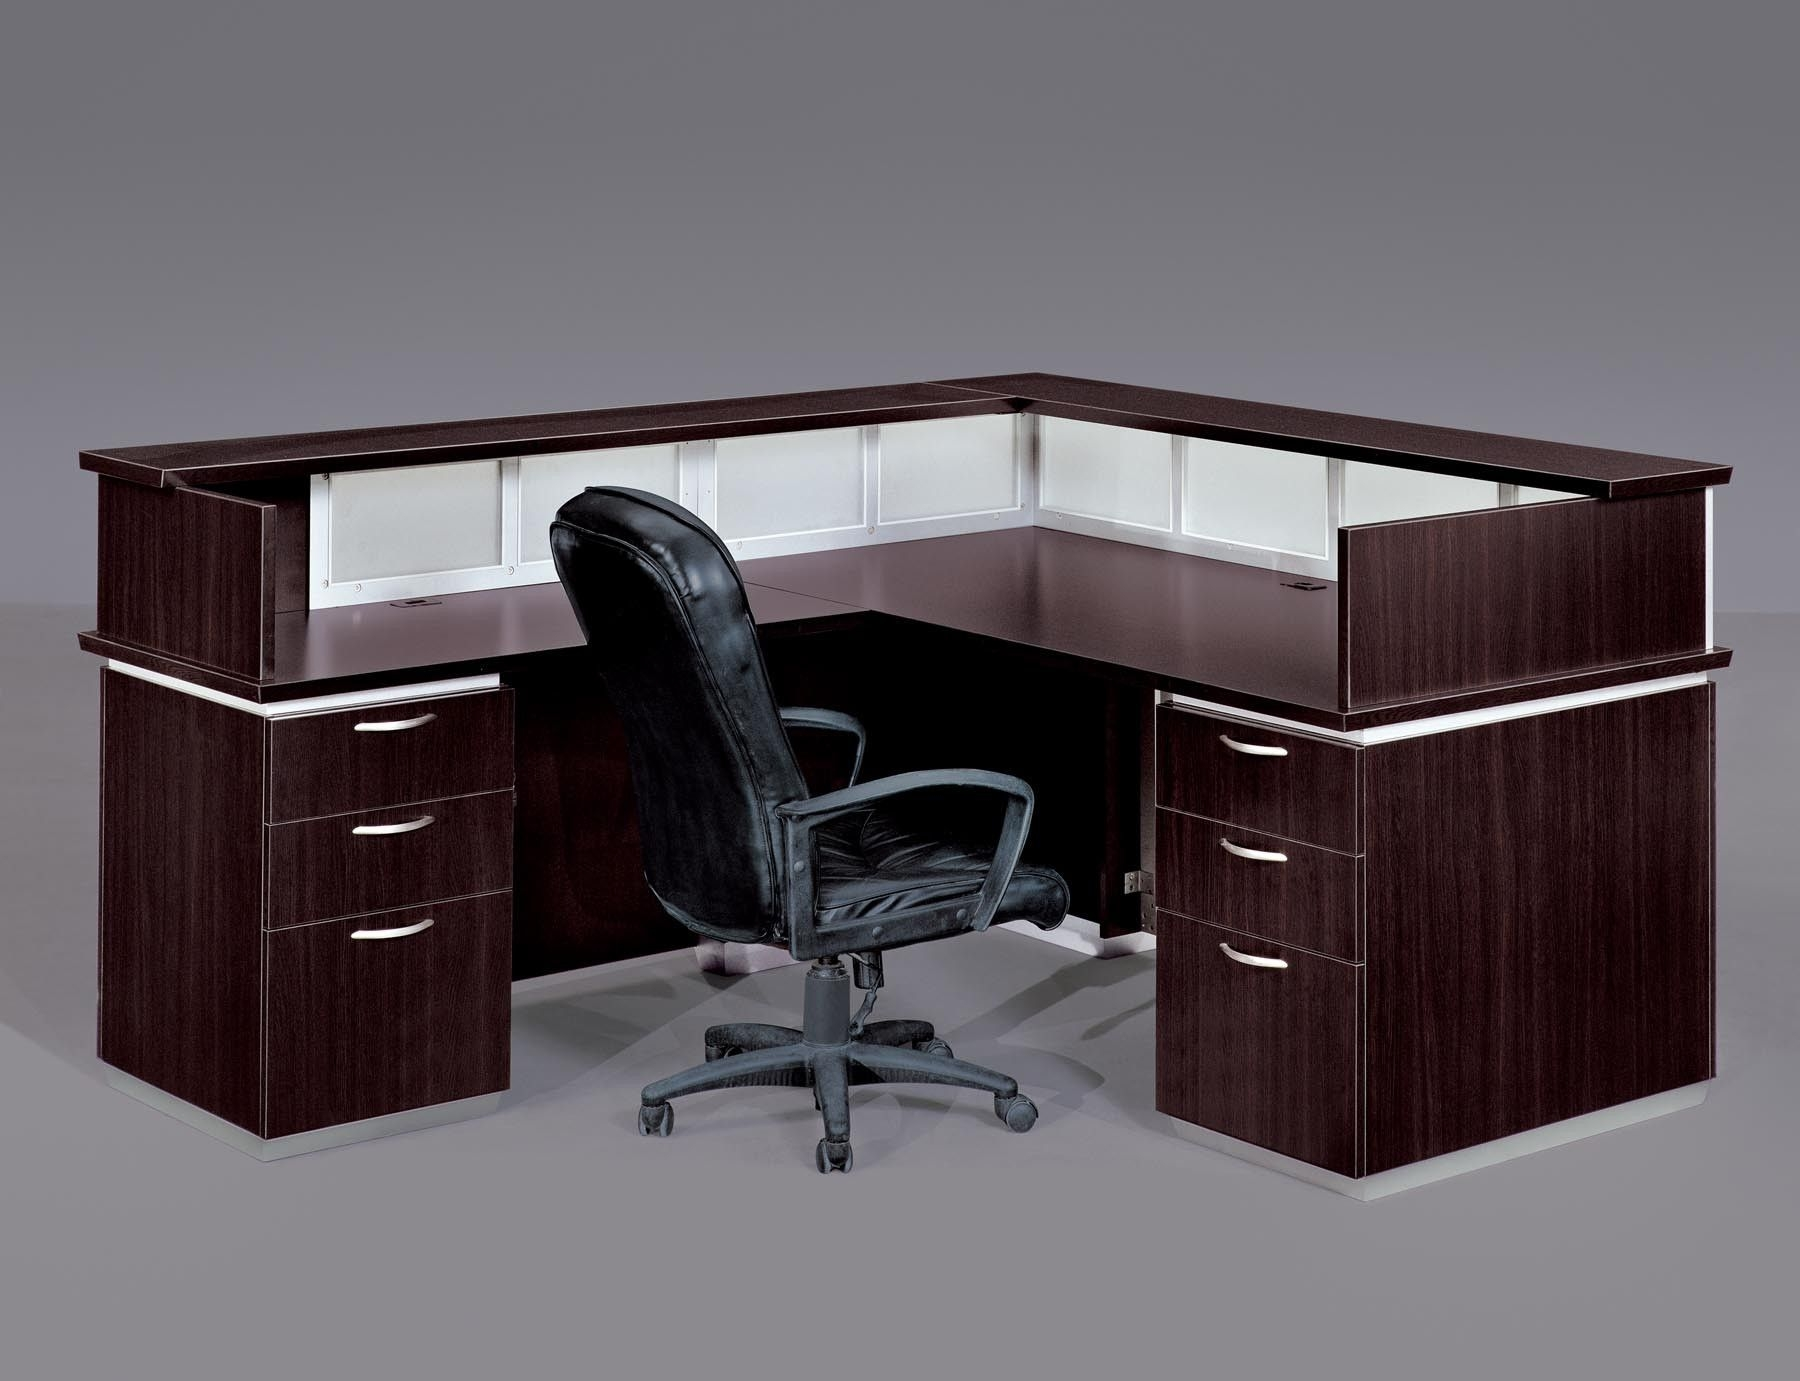 Glass Desk Office Mid Century Modern Glass Shaped Glass Desk With Drawers Wall Art And Wall Decor Ideas Shaped Glass Desk With Drawers Ideas On Foter